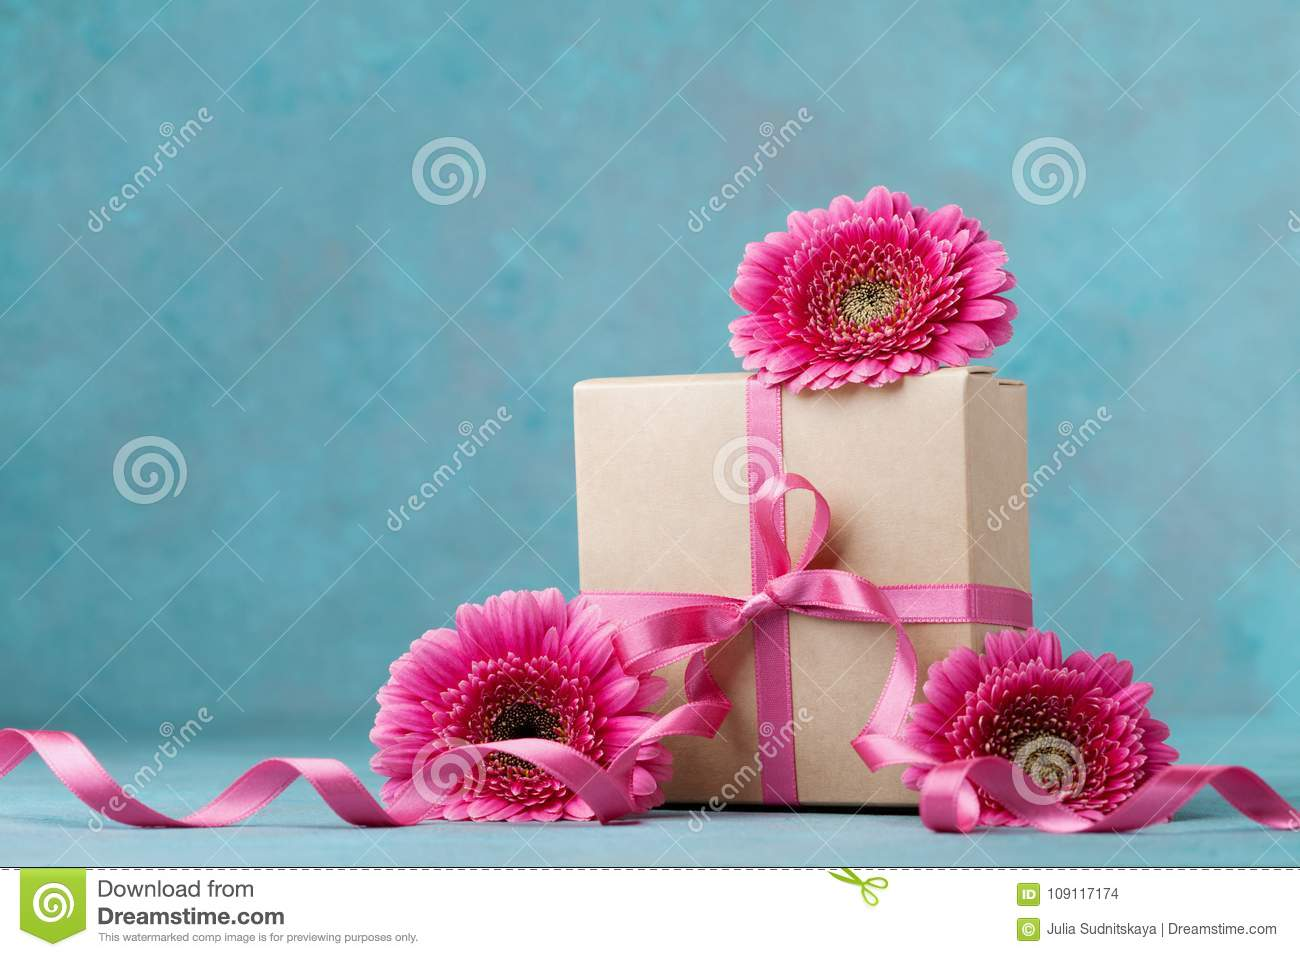 Pink Flowers And Gift Box With Ribbon On Turquoise Table Greeting